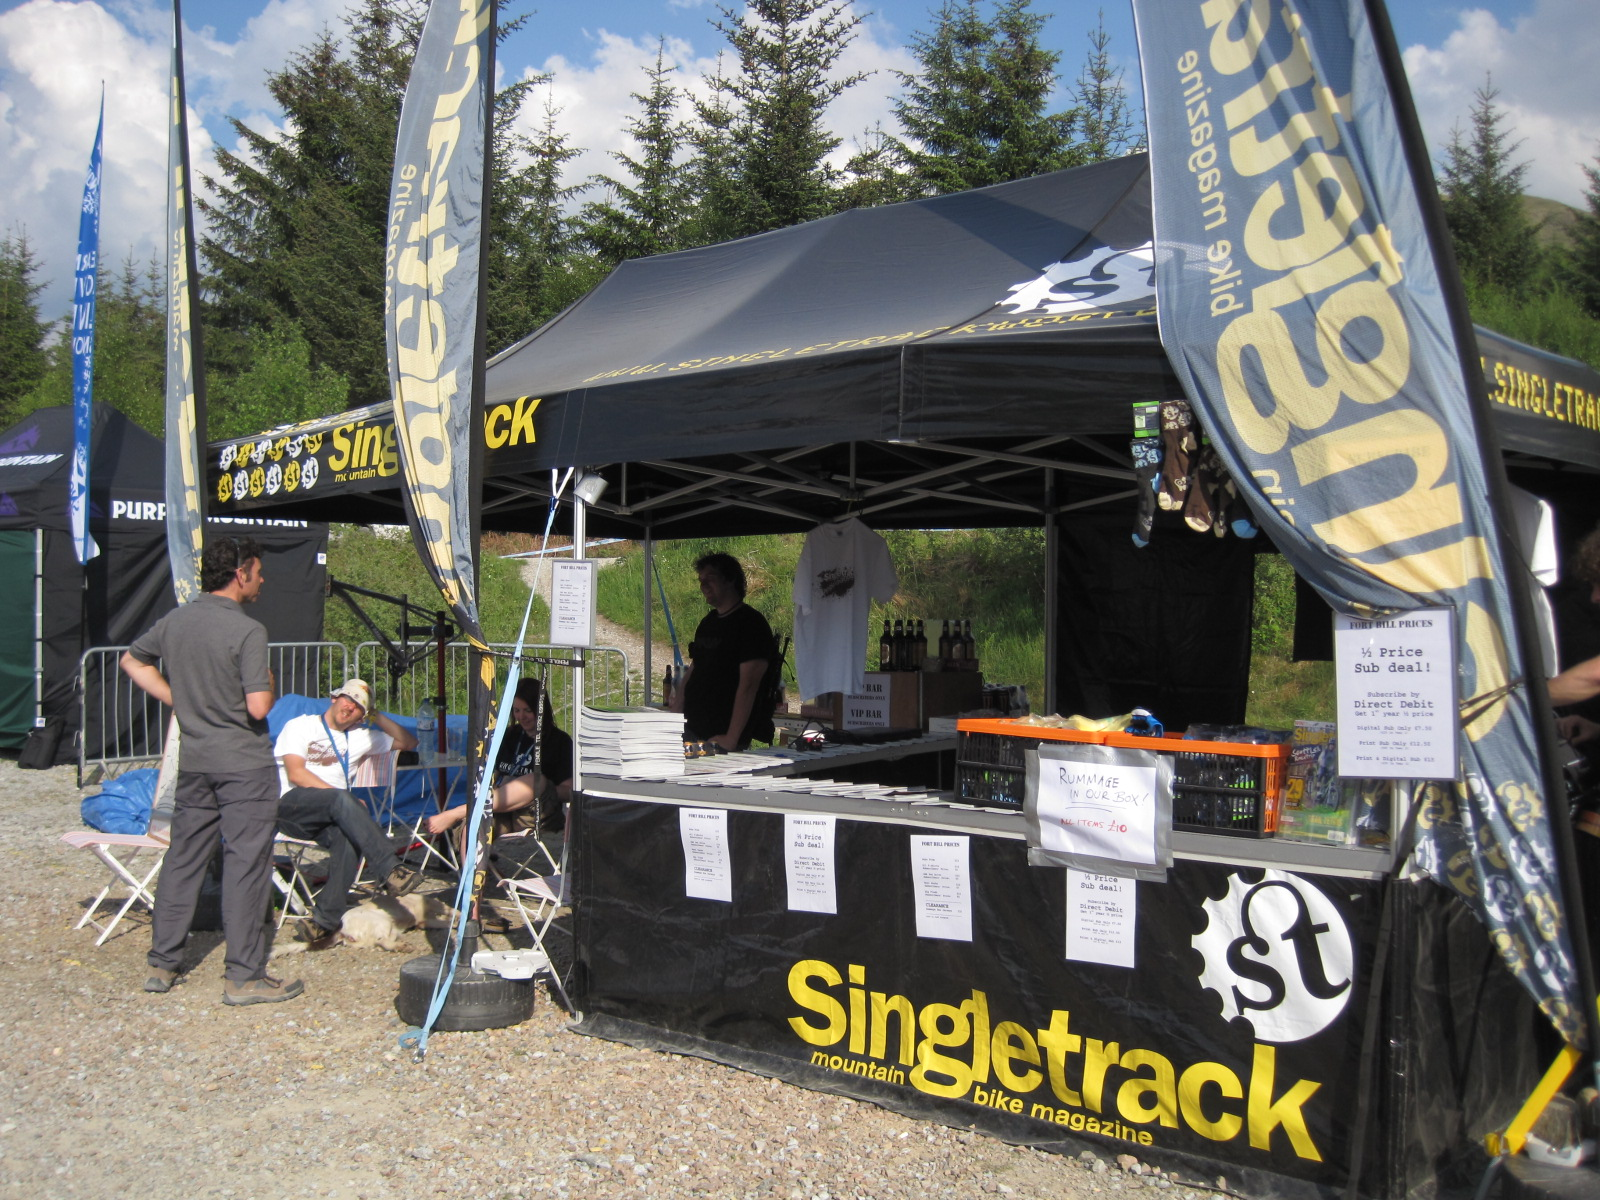 The Singletrack stand